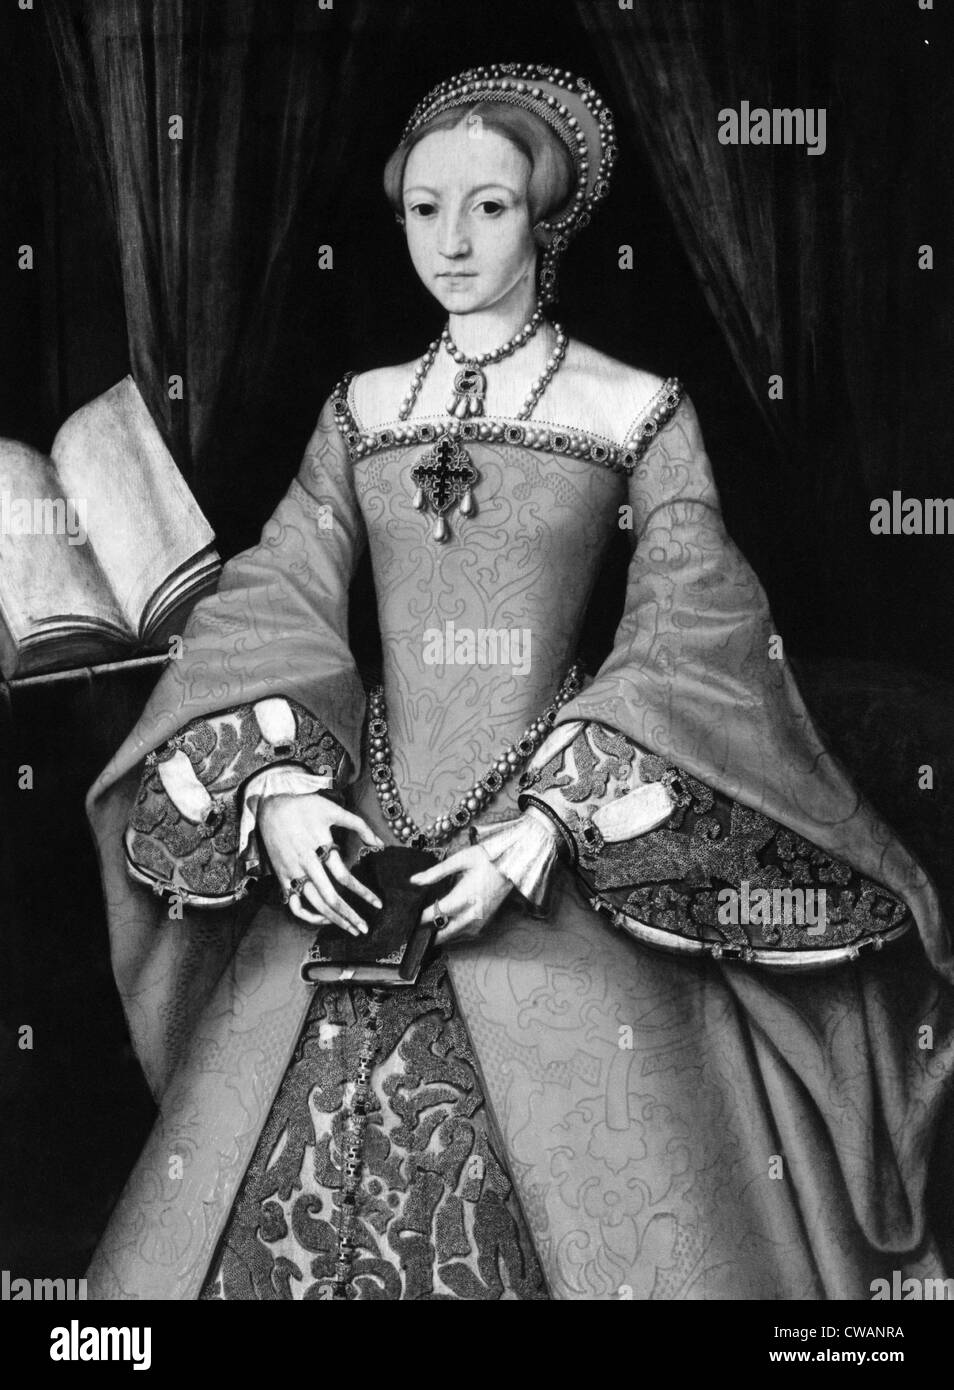 Elizabeth I, (1533-1603), Queen of England 1558-1603, c. 1546.. Courtesy: CSU Archives / Everett Collection - Stock Image